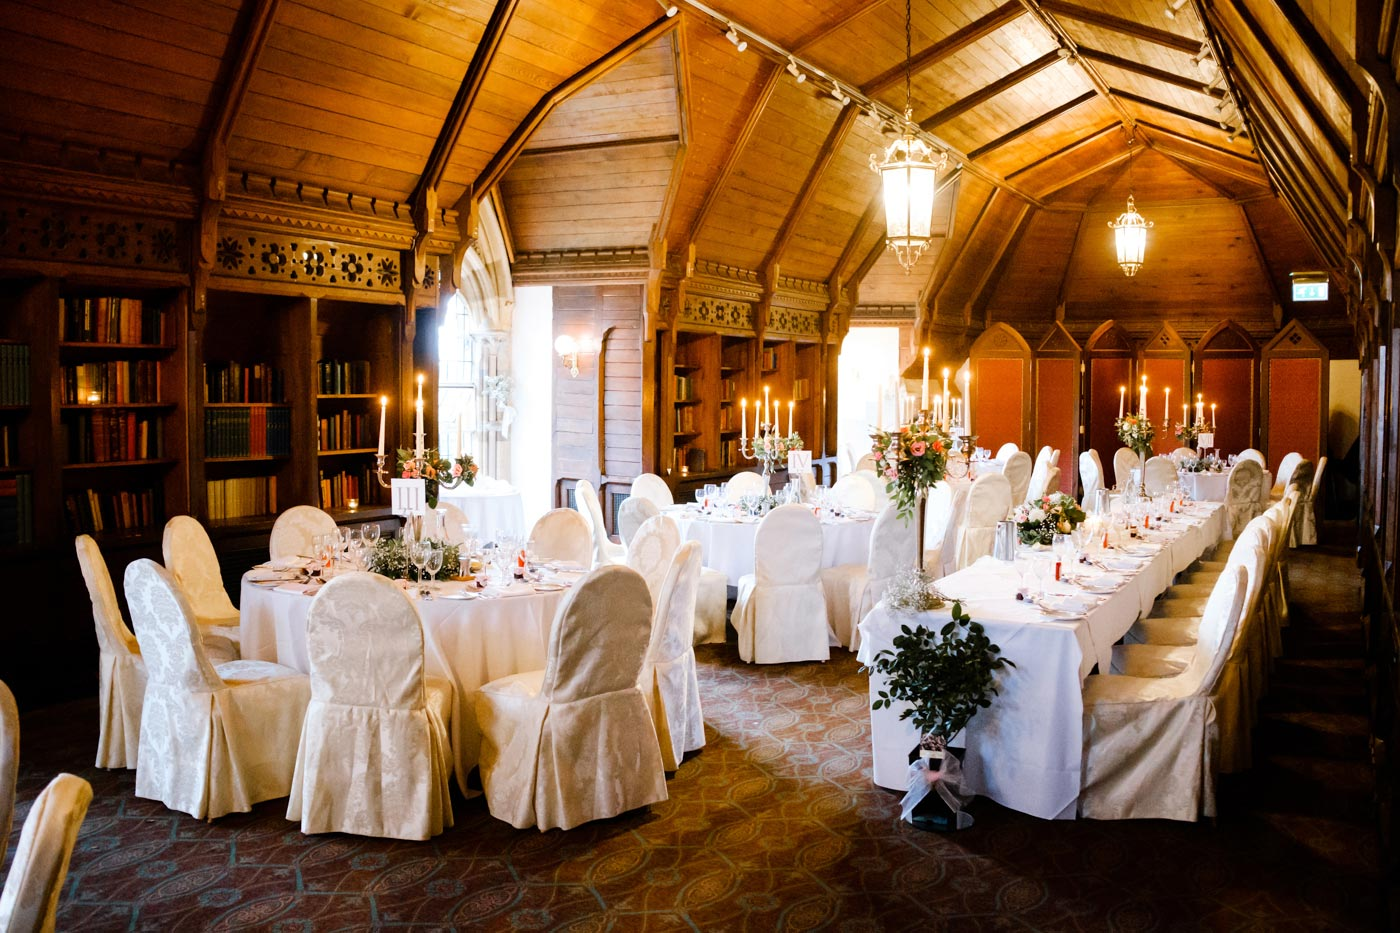 The Long Gallery at Ettington Park Hotel